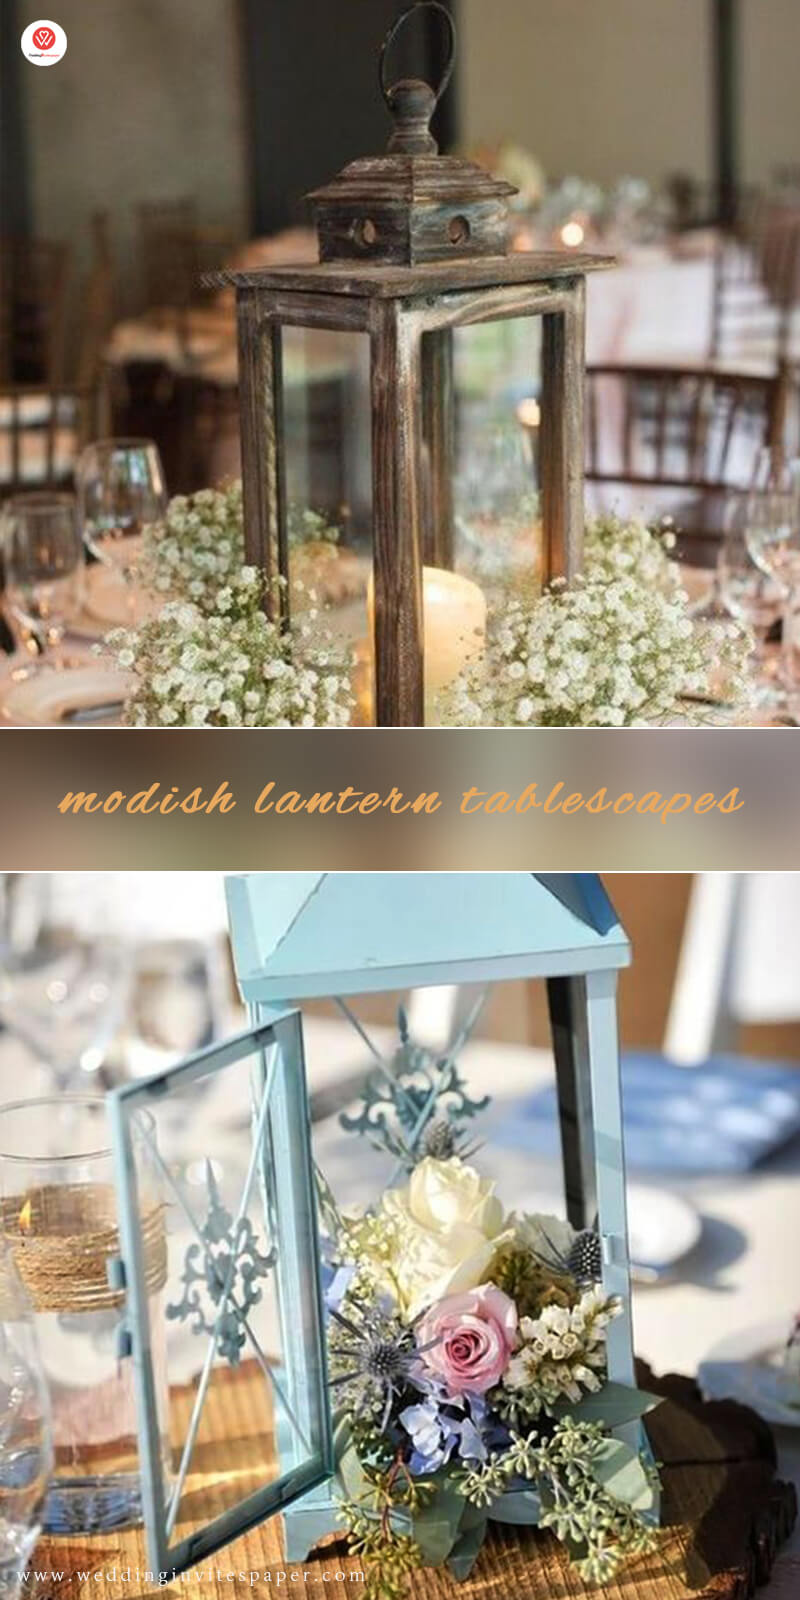 4 modish lantern tablescapes.jpg